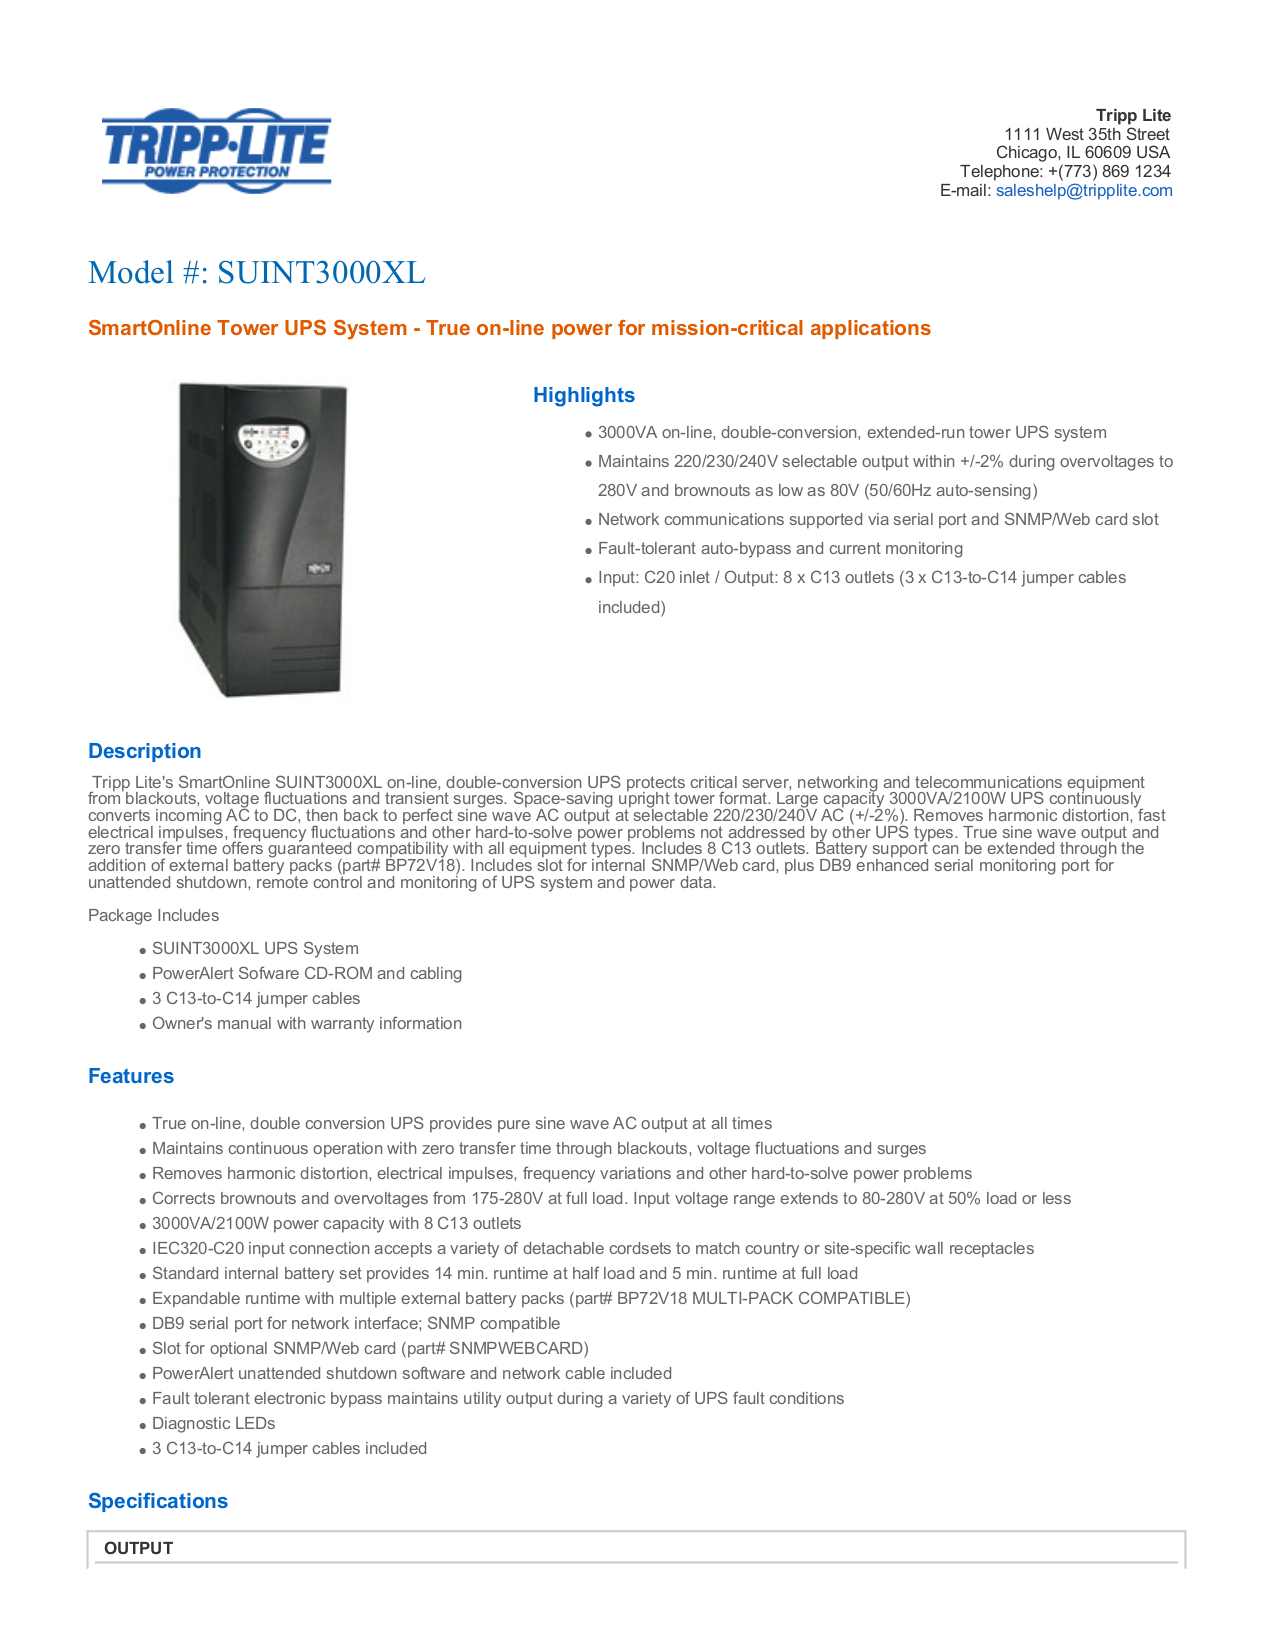 Download free pdf for Tripp SmartOnline SUINT3000XL UPS Systems